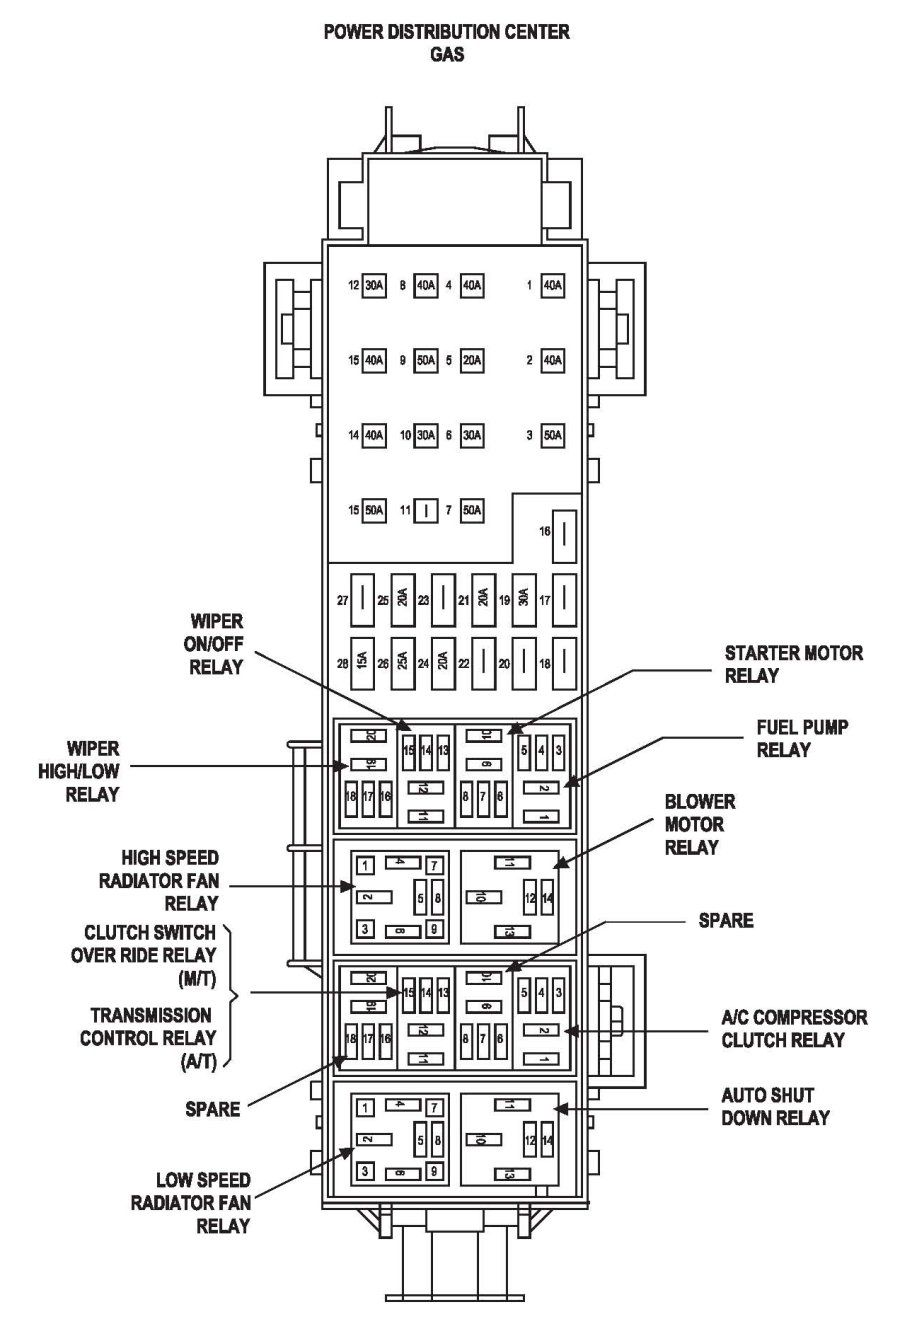 [FPER_4992]  Jeep Liberty Fuse Box Diagram - image details | Jeep liberty, Jeep  commander, Fuse box | 2002 Grand Cherokee Fuse Box |  | Pinterest